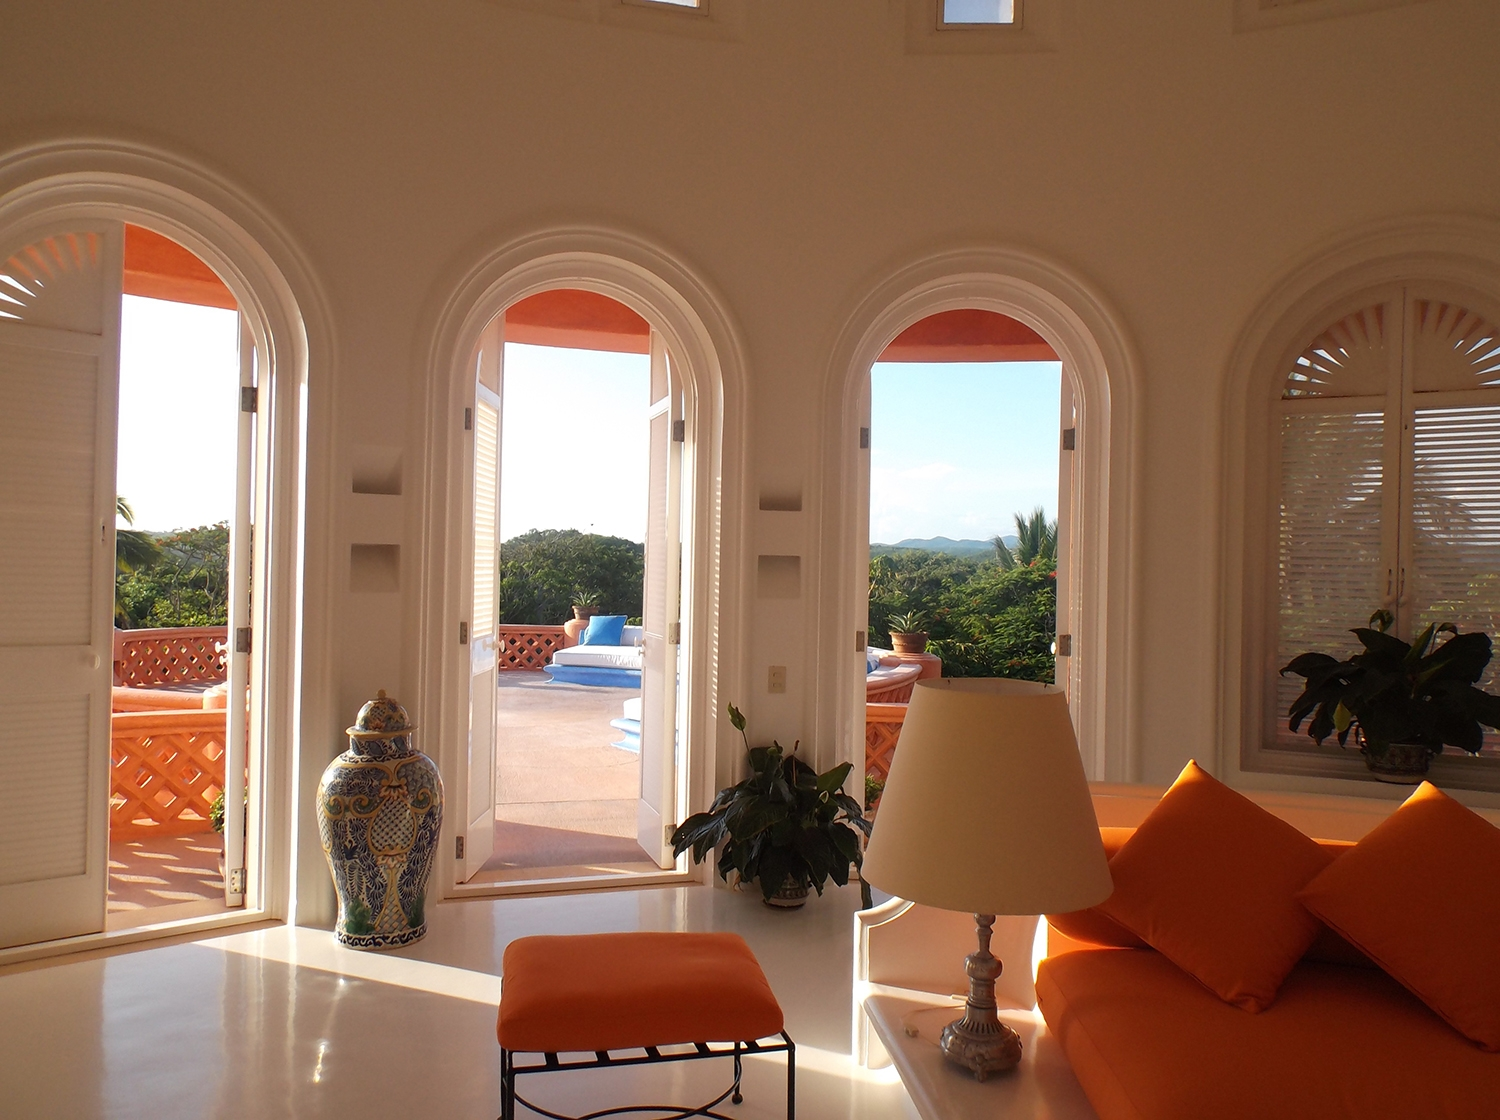 Orange interiors and large arch doorways lead out to a balcony at Casa Playa